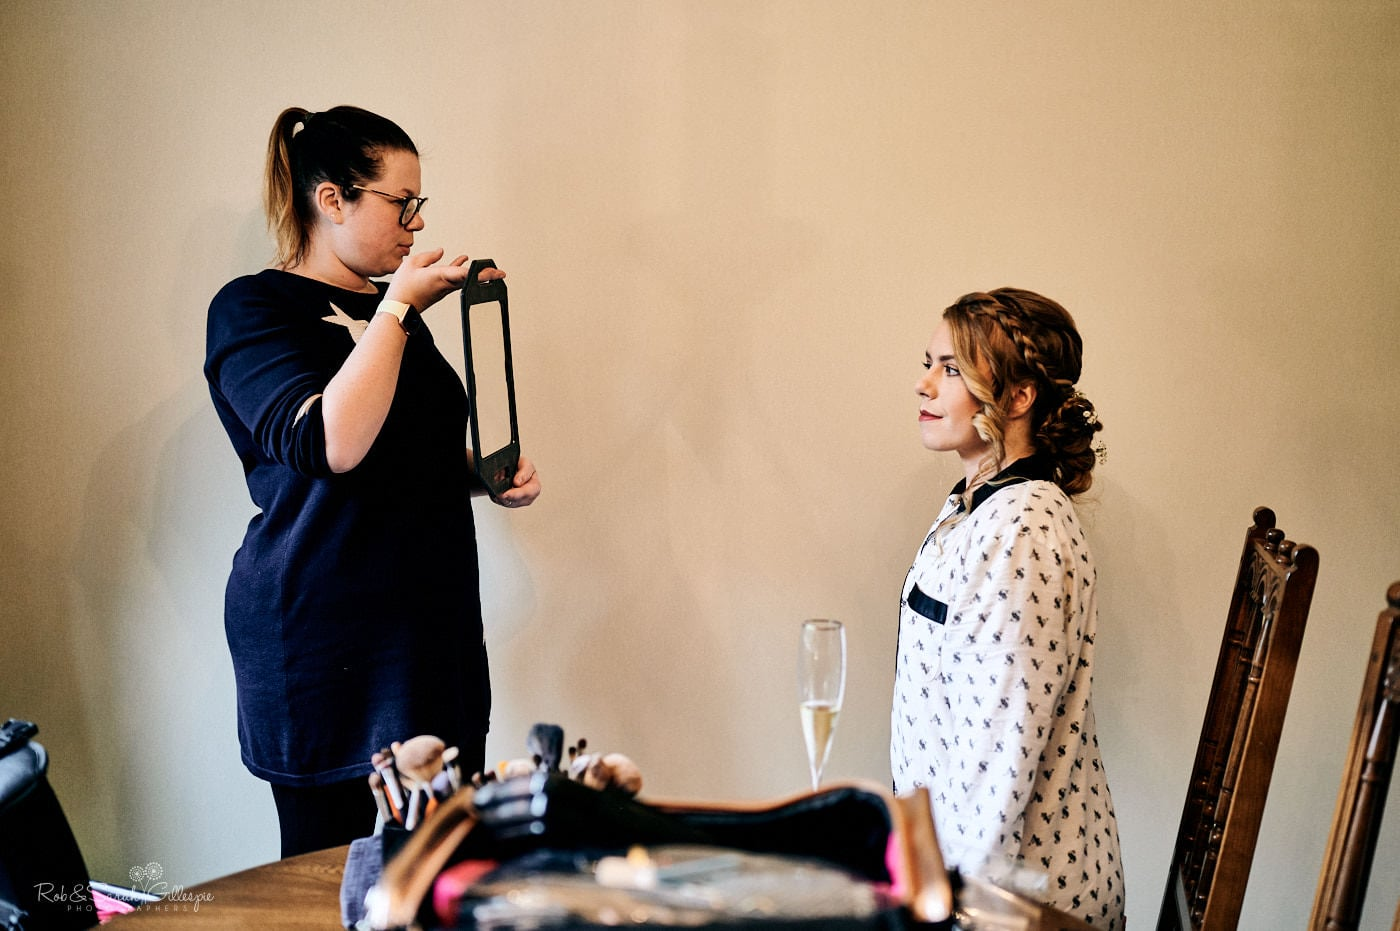 Hair stylist shows bride her hair in a mirror